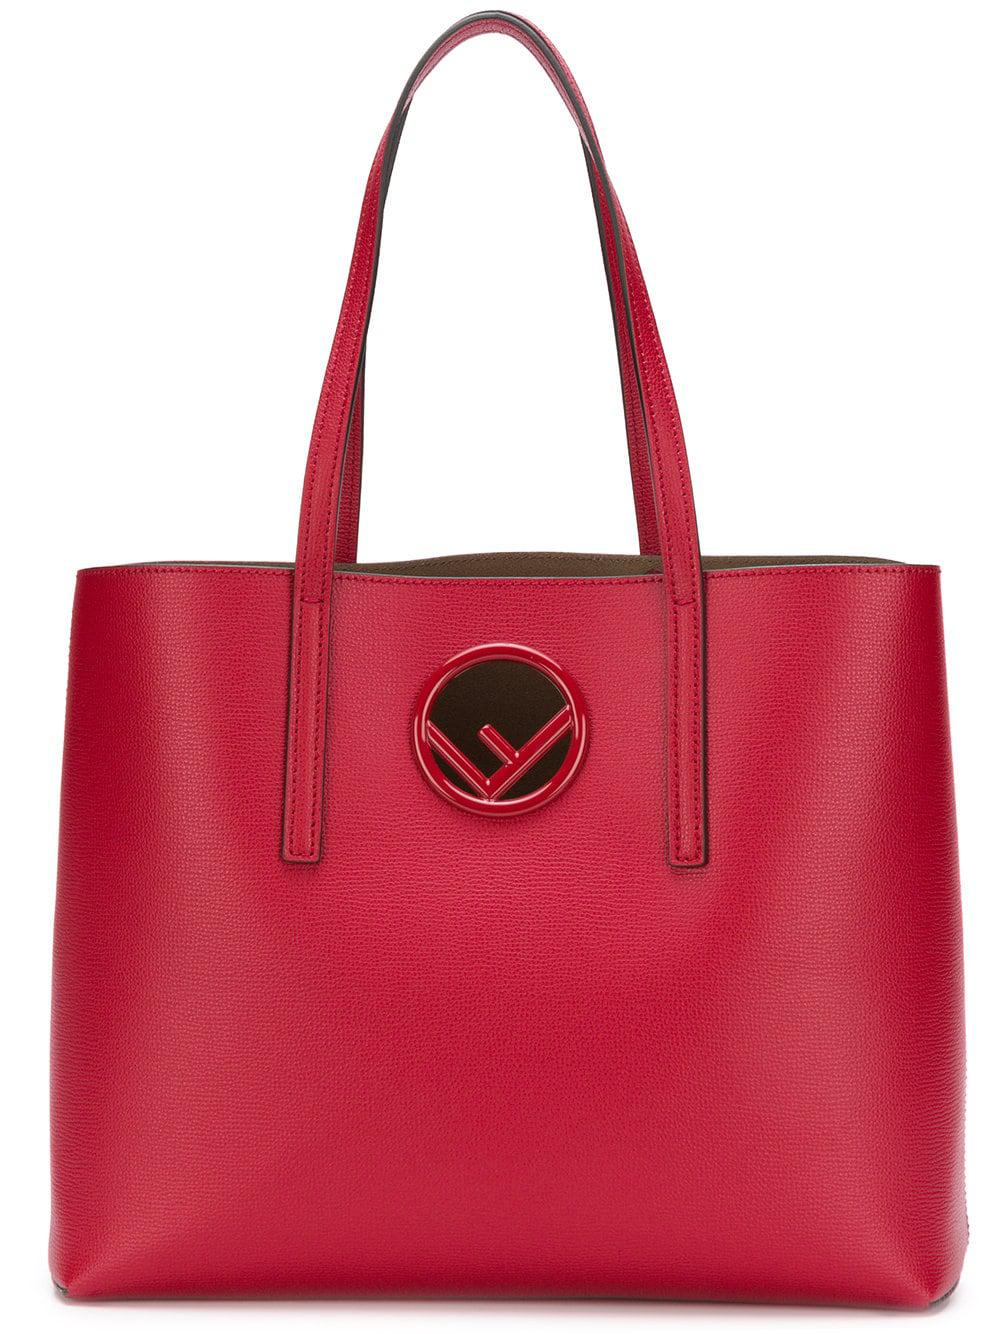 27f9f1956115 Fendi Leather Shopping Bag in Red - Lyst